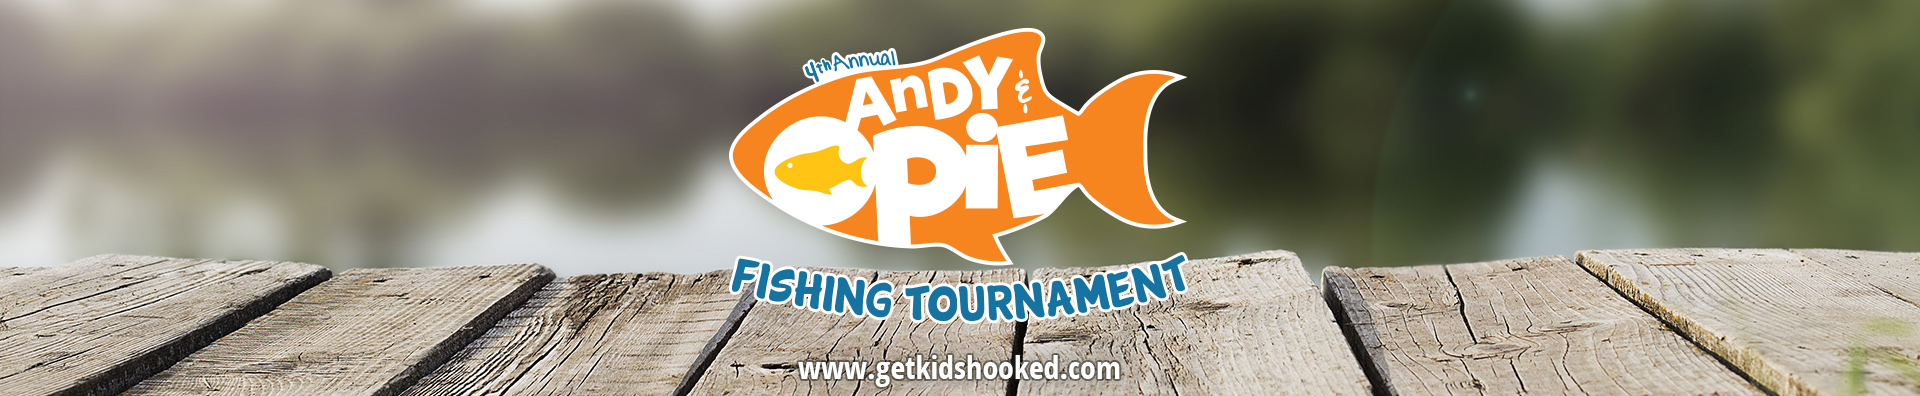 Andy & Opie Fishing Tournament